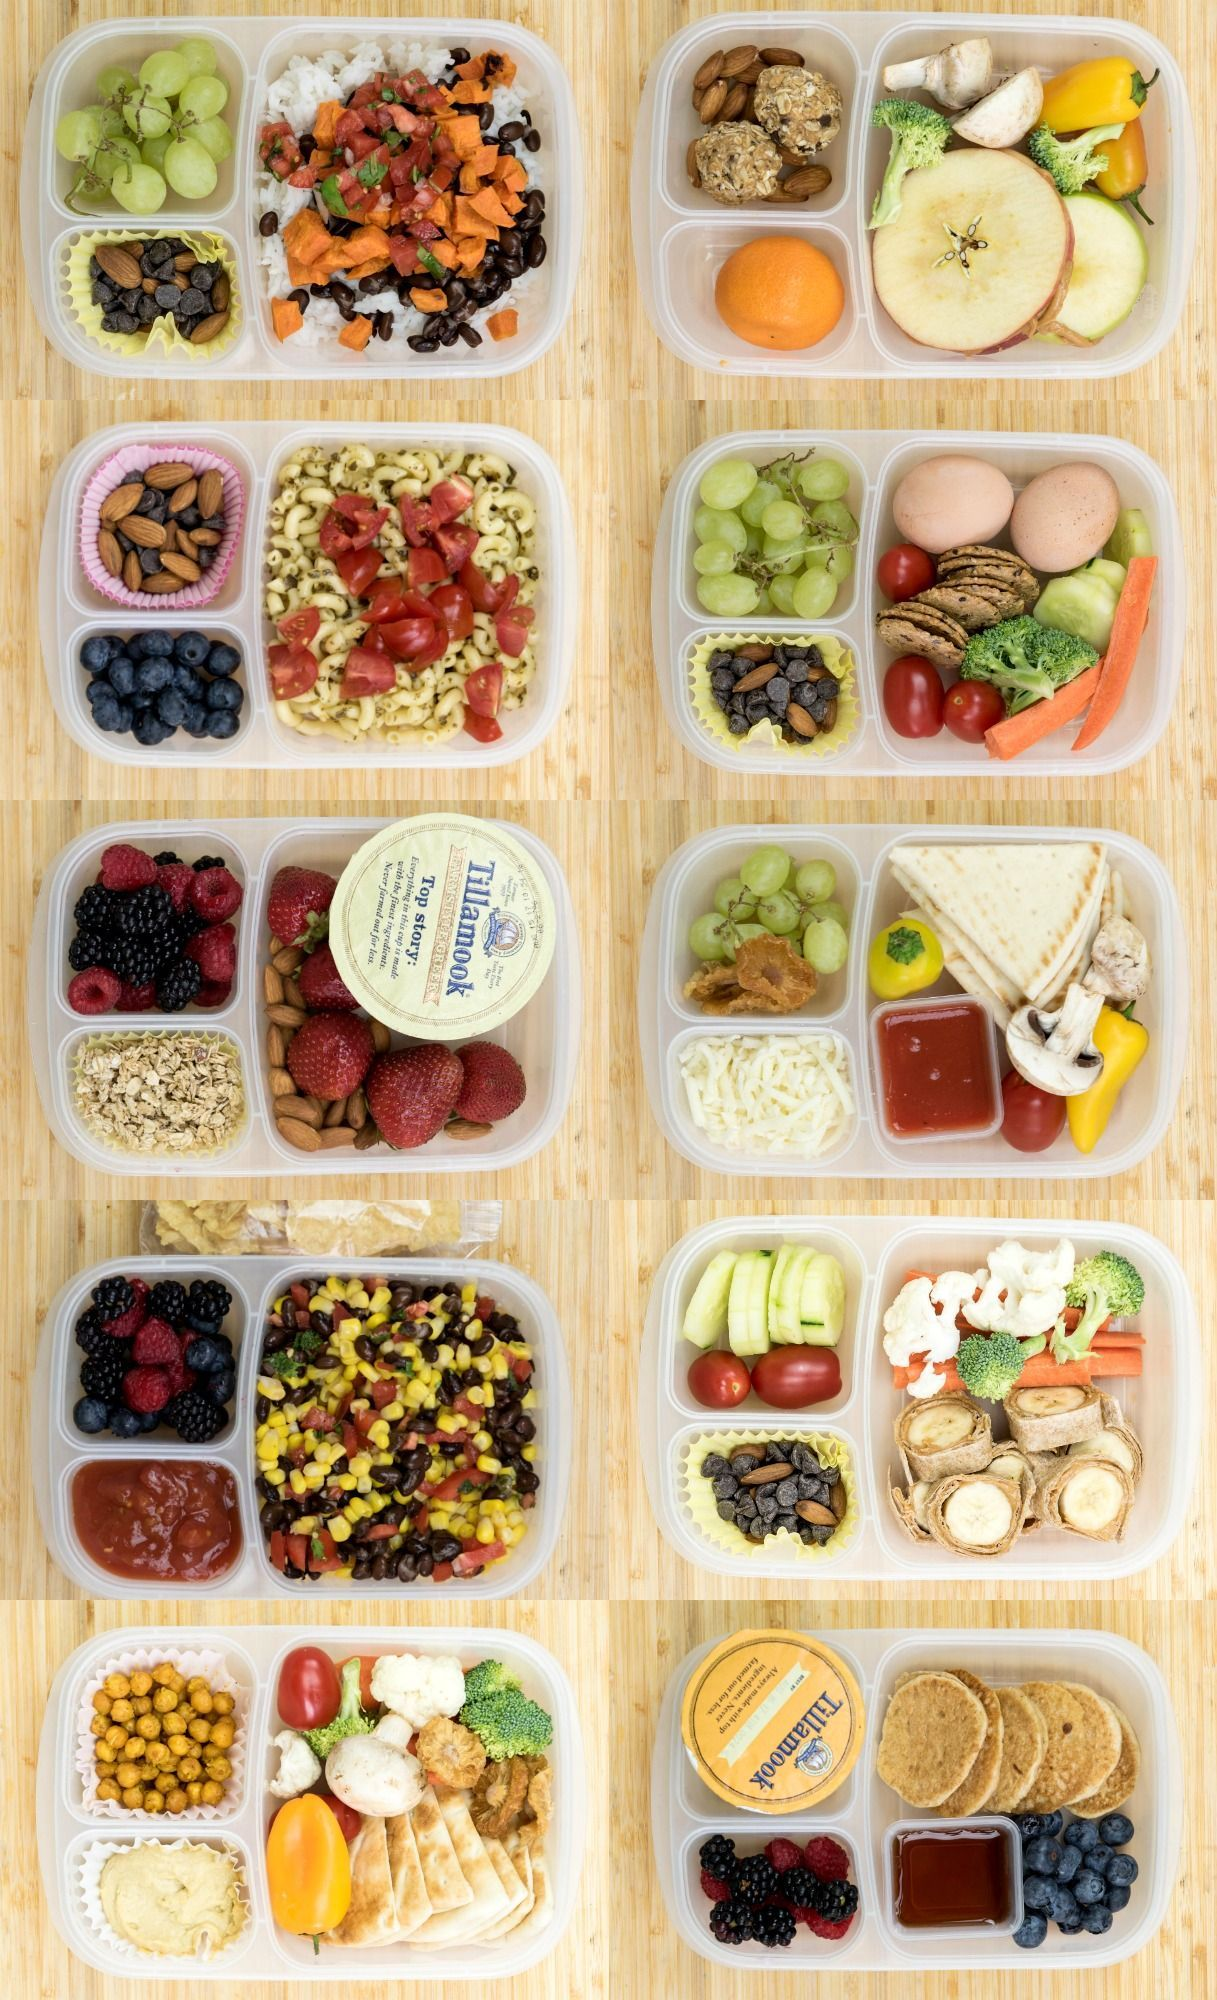 12 Healthy Lunch Box Ideas for Kids or Adults that are